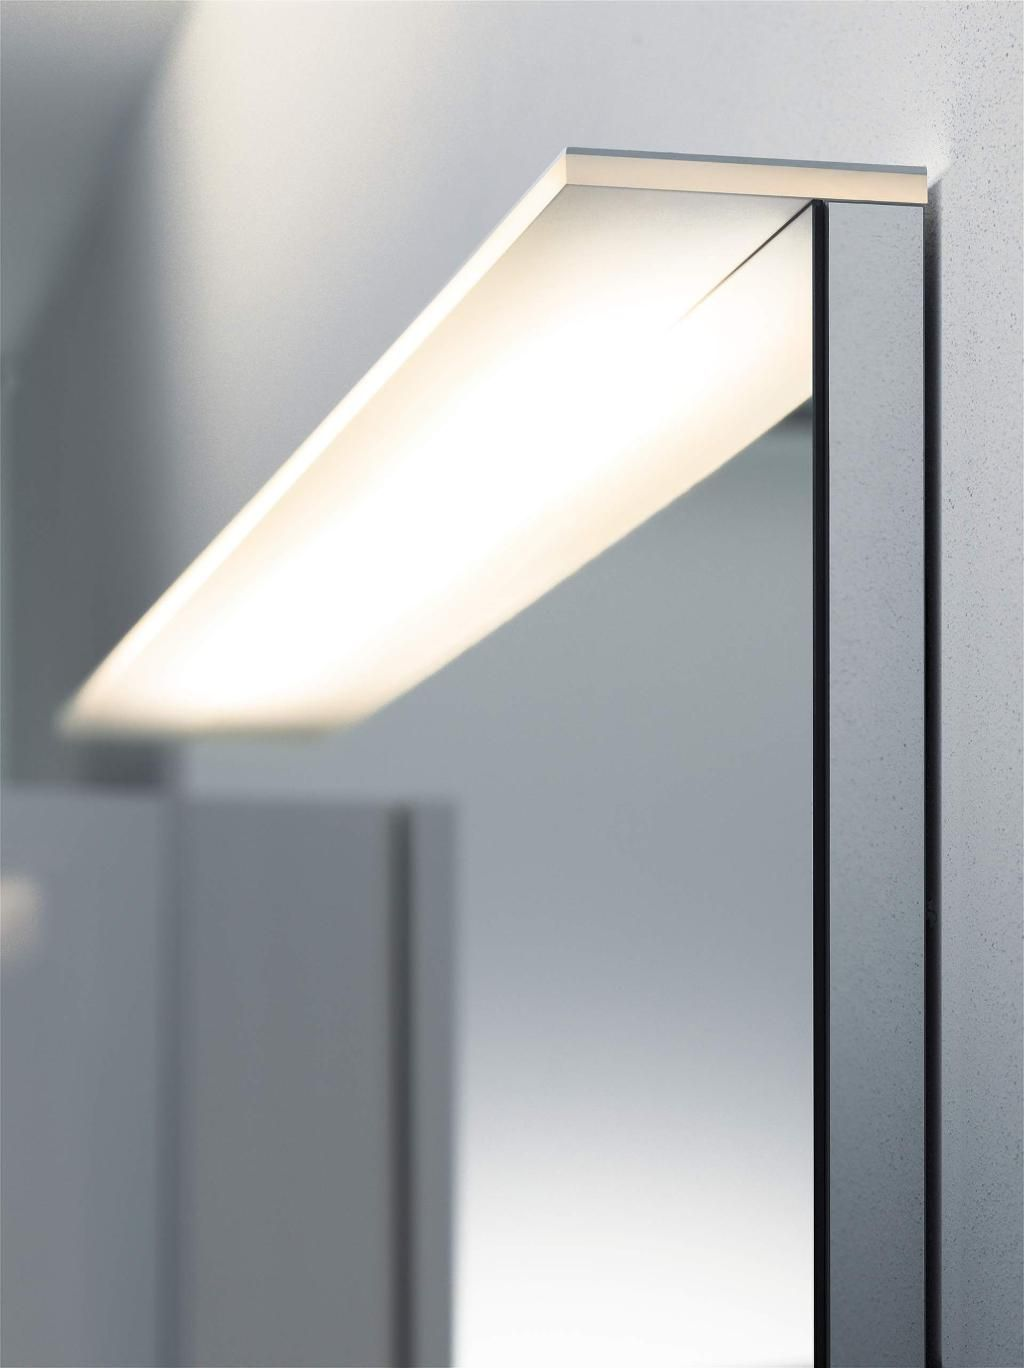 Duravit Delos Mirror with Light and Cabinet Google Search